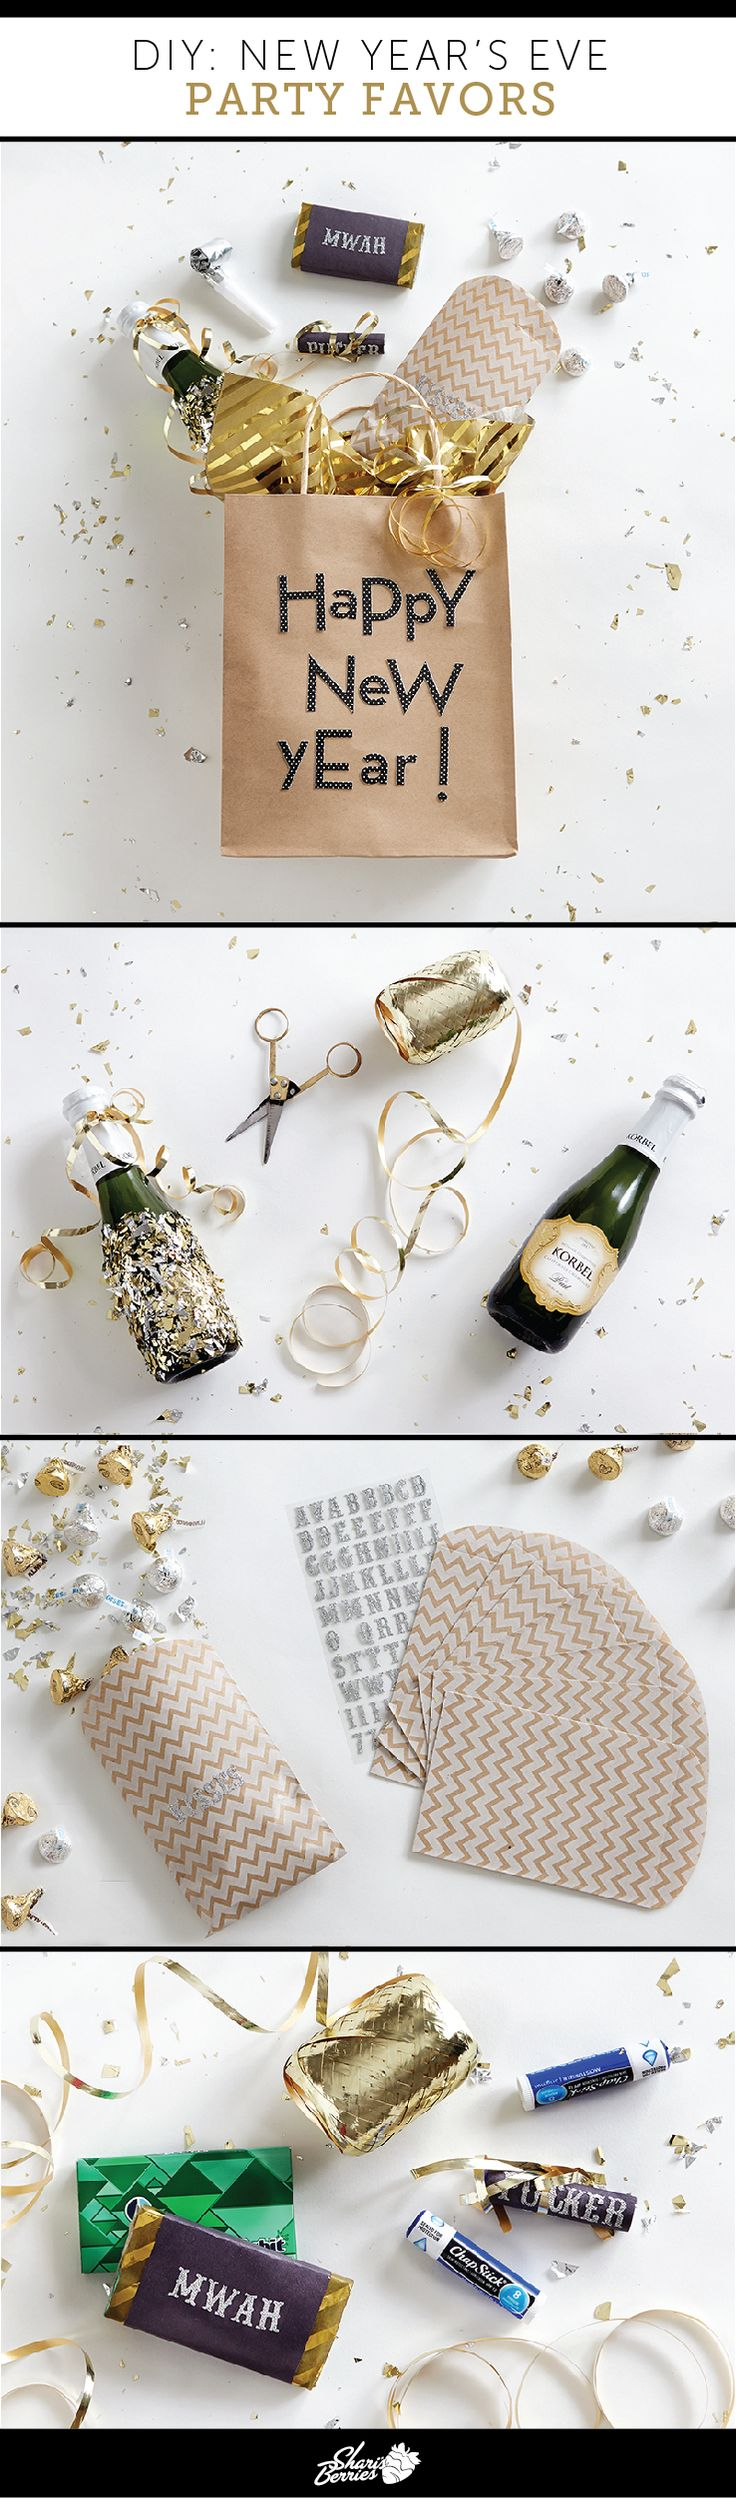 5 ... 4 ... 3 ... 2 ... 1! Let the New Year's party planning begin. After you've sent out the invitations and scored a sparkly frock it's time to make the party favors. Of course, you're making them yourself, because you're crafty and creative like that. Our easy DIY has everything you need from the champagne toast to the midnight kiss.